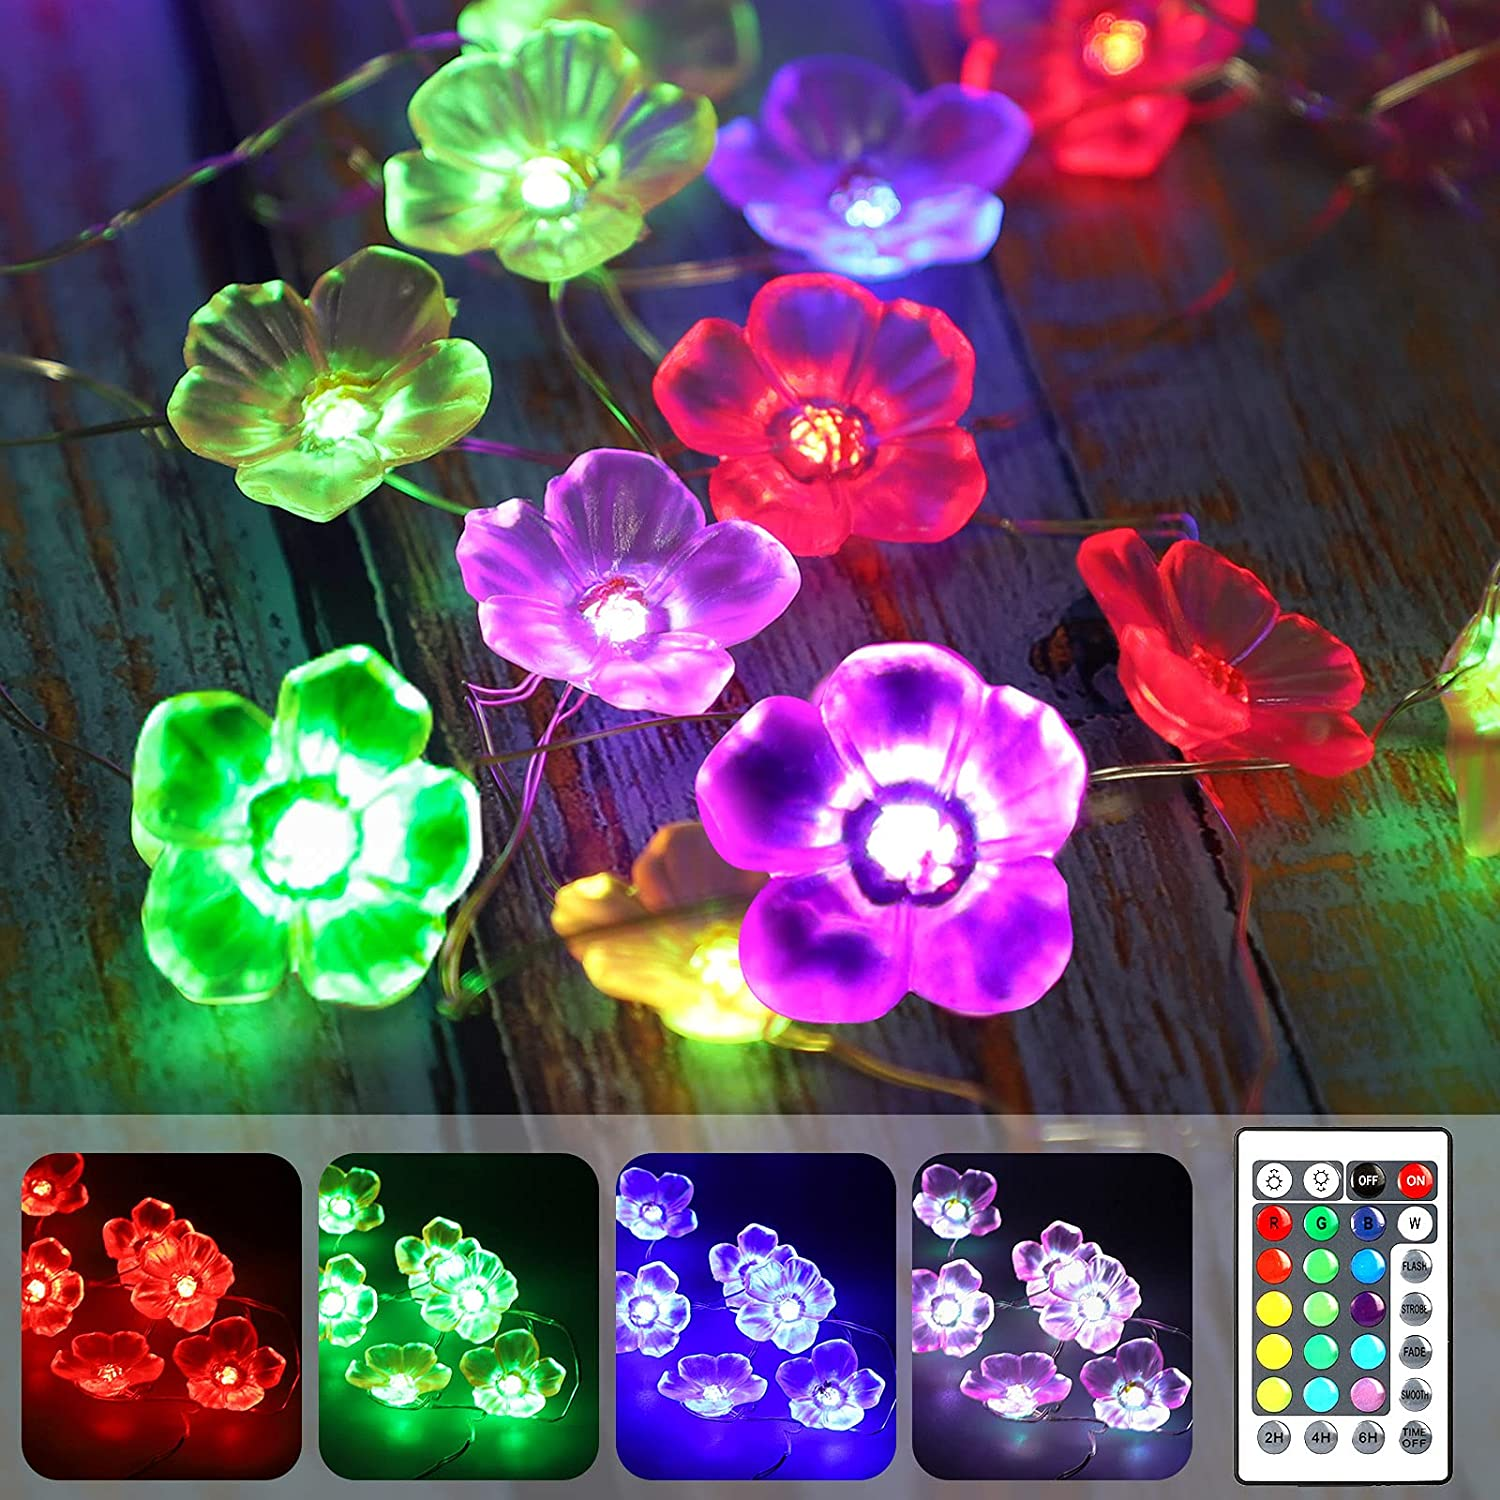 EEEKit 40 LED Cherry Blossom Flower String Lights, 16 Colors Changing Remote Control 3D Flowers Decorative USB and Battery Operated Waterproof Outdoor Lights for Wedding Bedroom Wall Decor